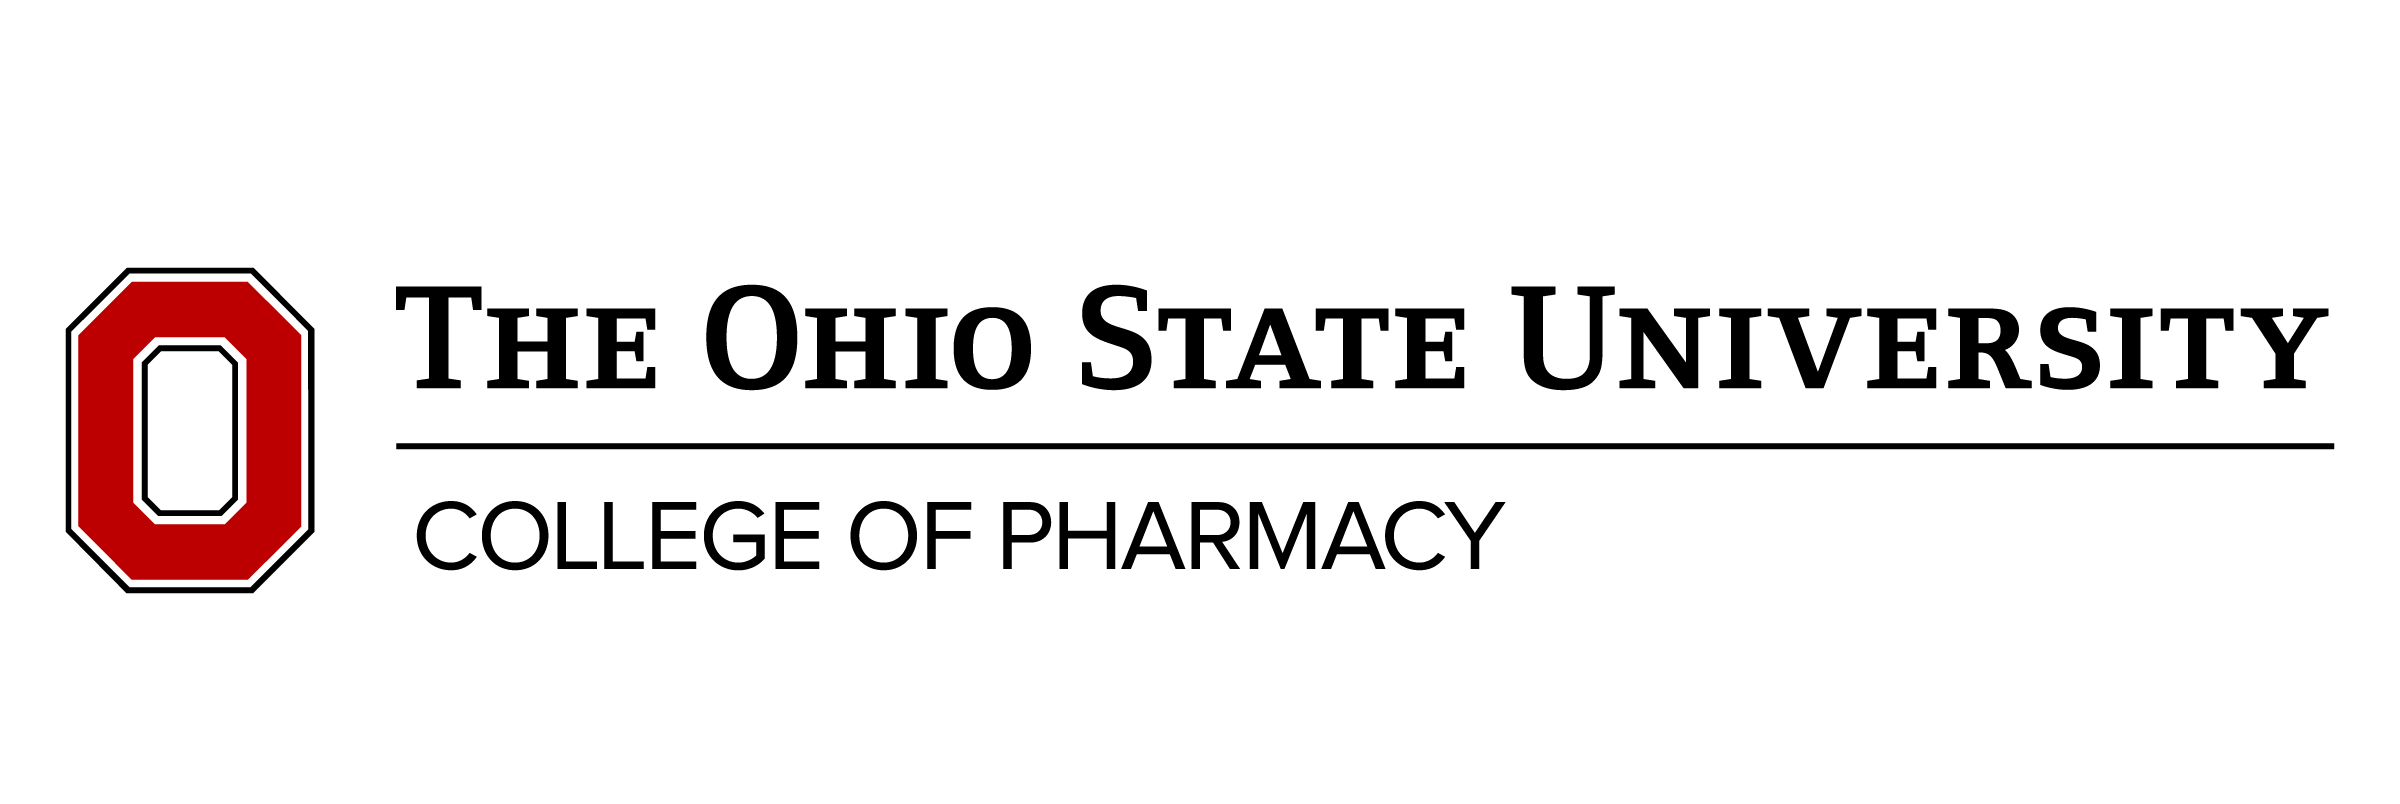 The Ohio State University- College of Pharmacy